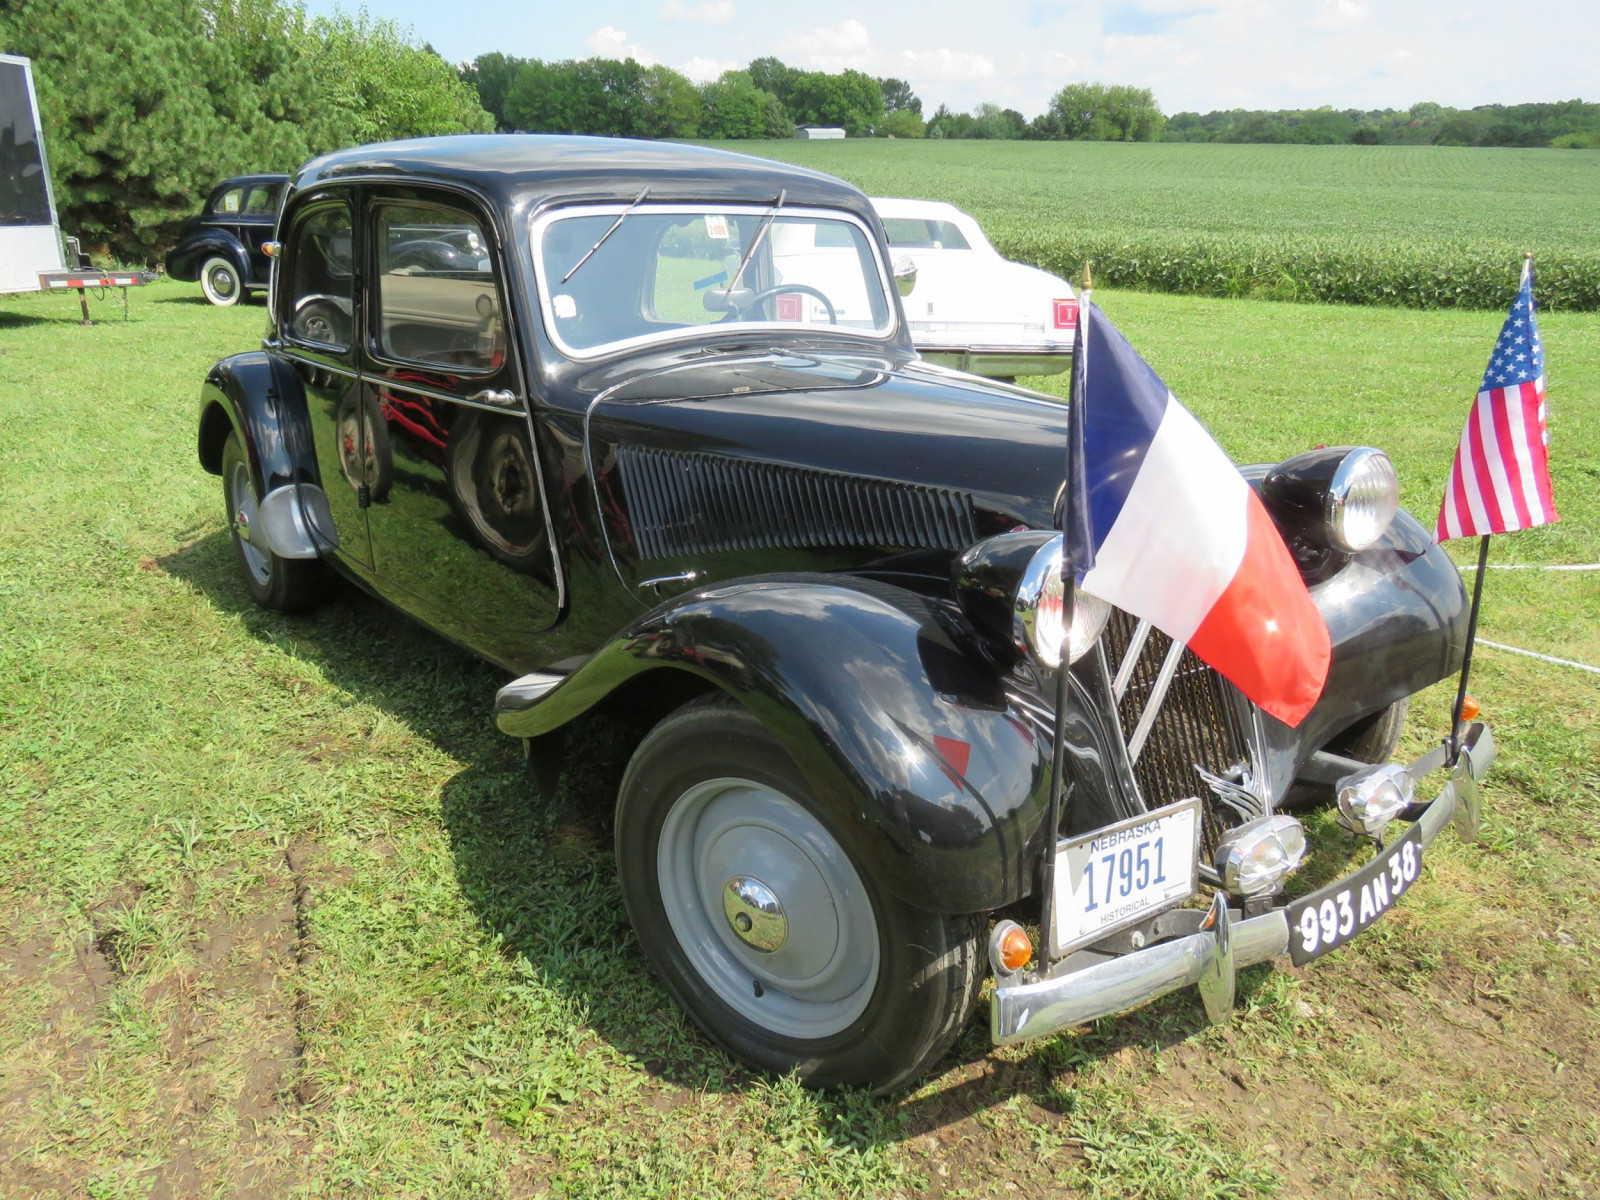 1951 Citroen Traction Avant 4dr Sedan - Image 1